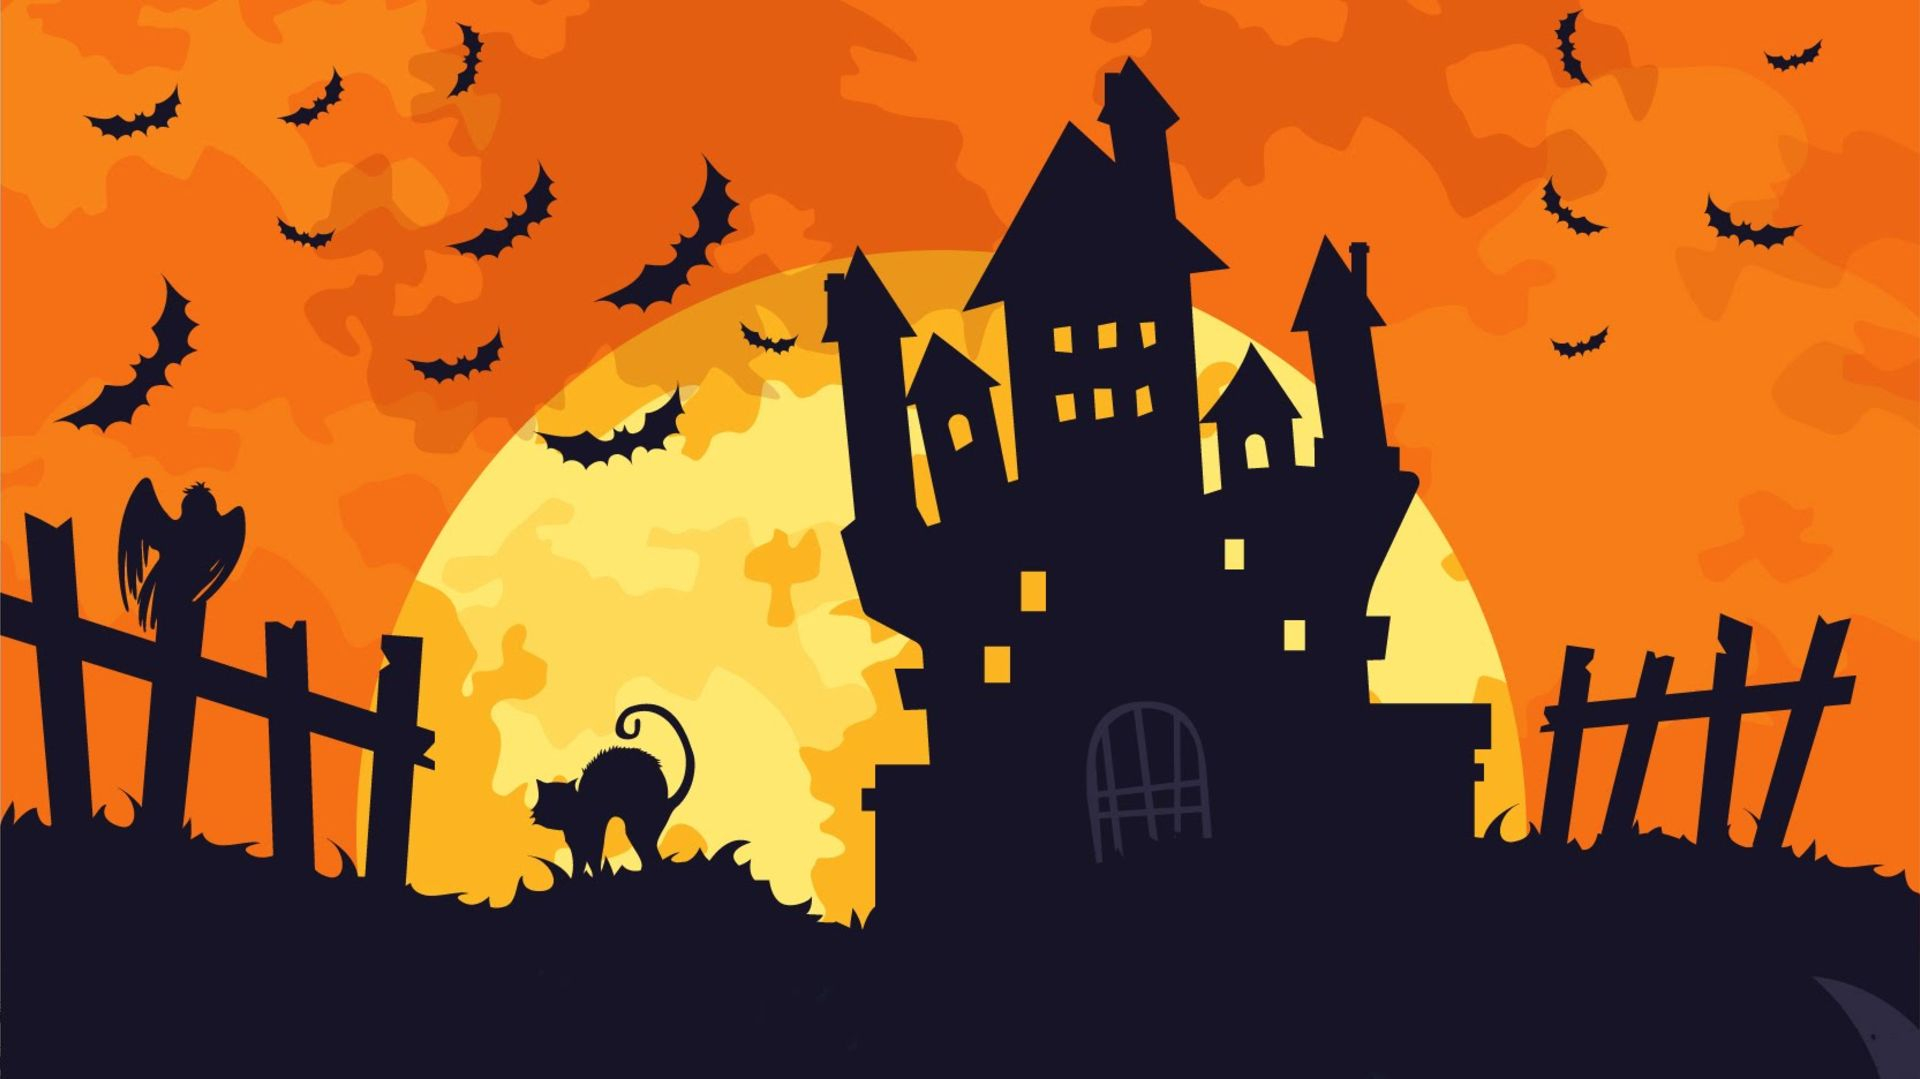 Buying a Home Can Be Scary Until You Know the Facts [INFOGRAPHIC]